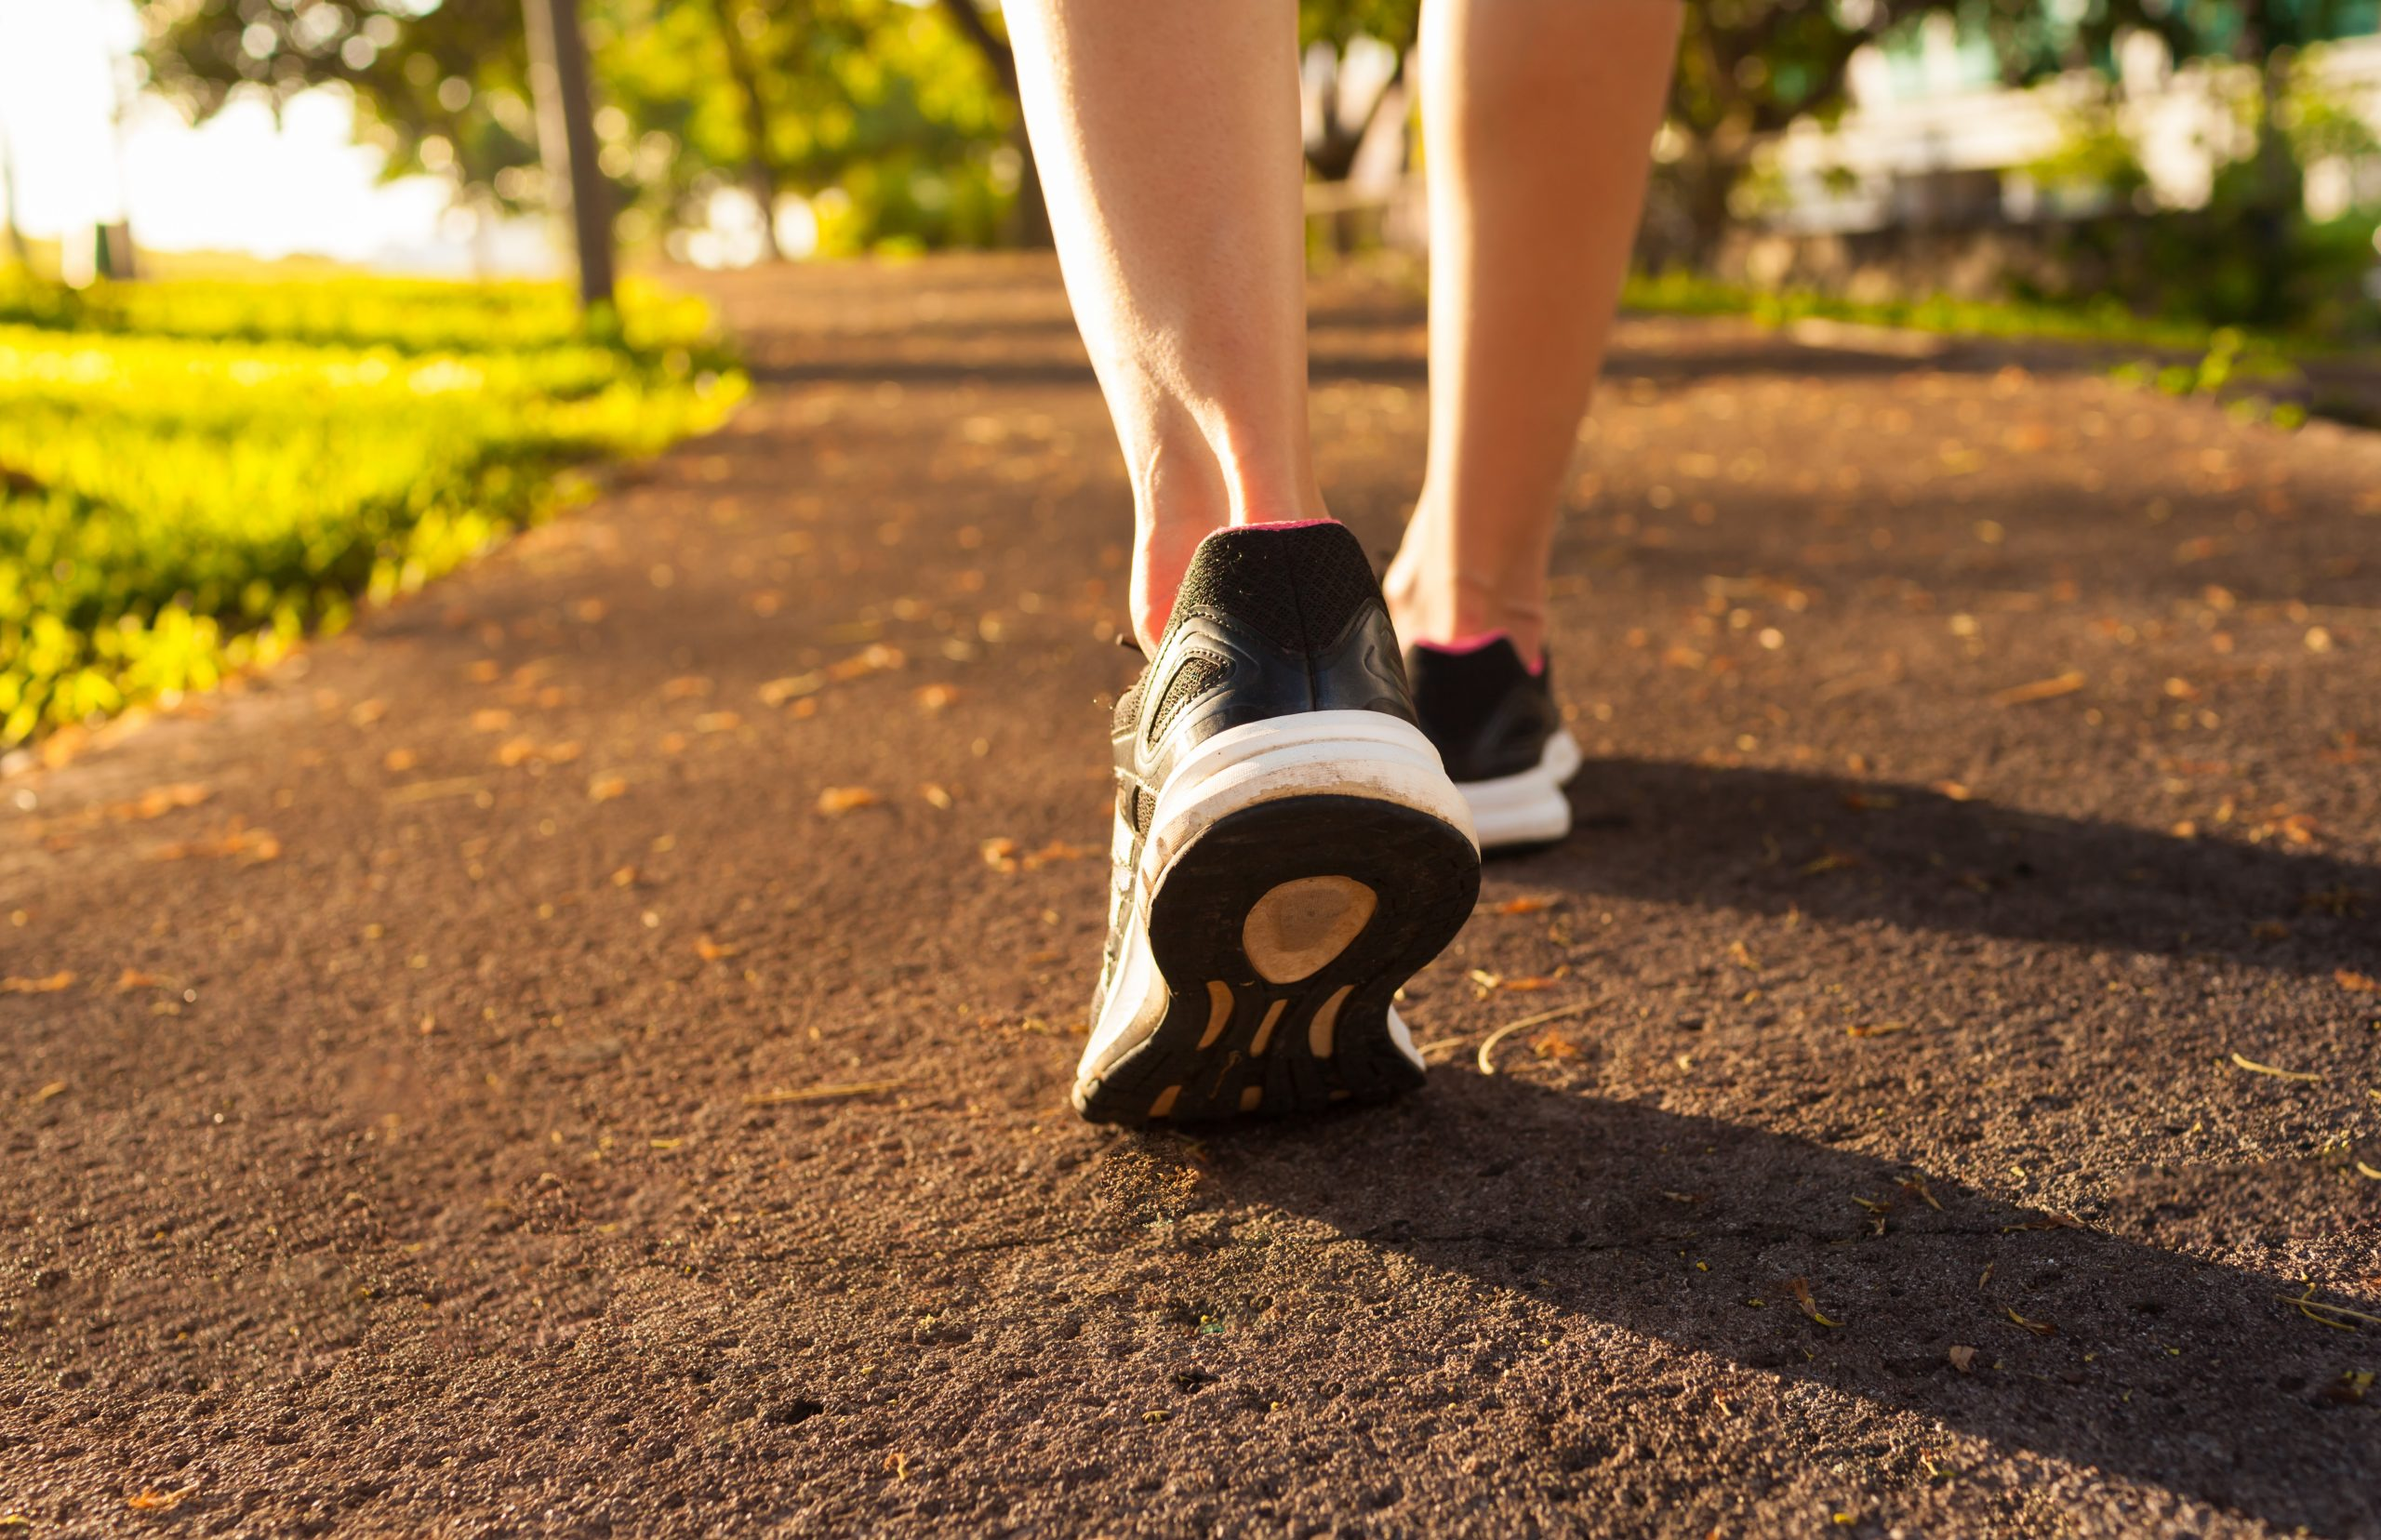 A close-up view of a person's shoes as they walk outside on a trail